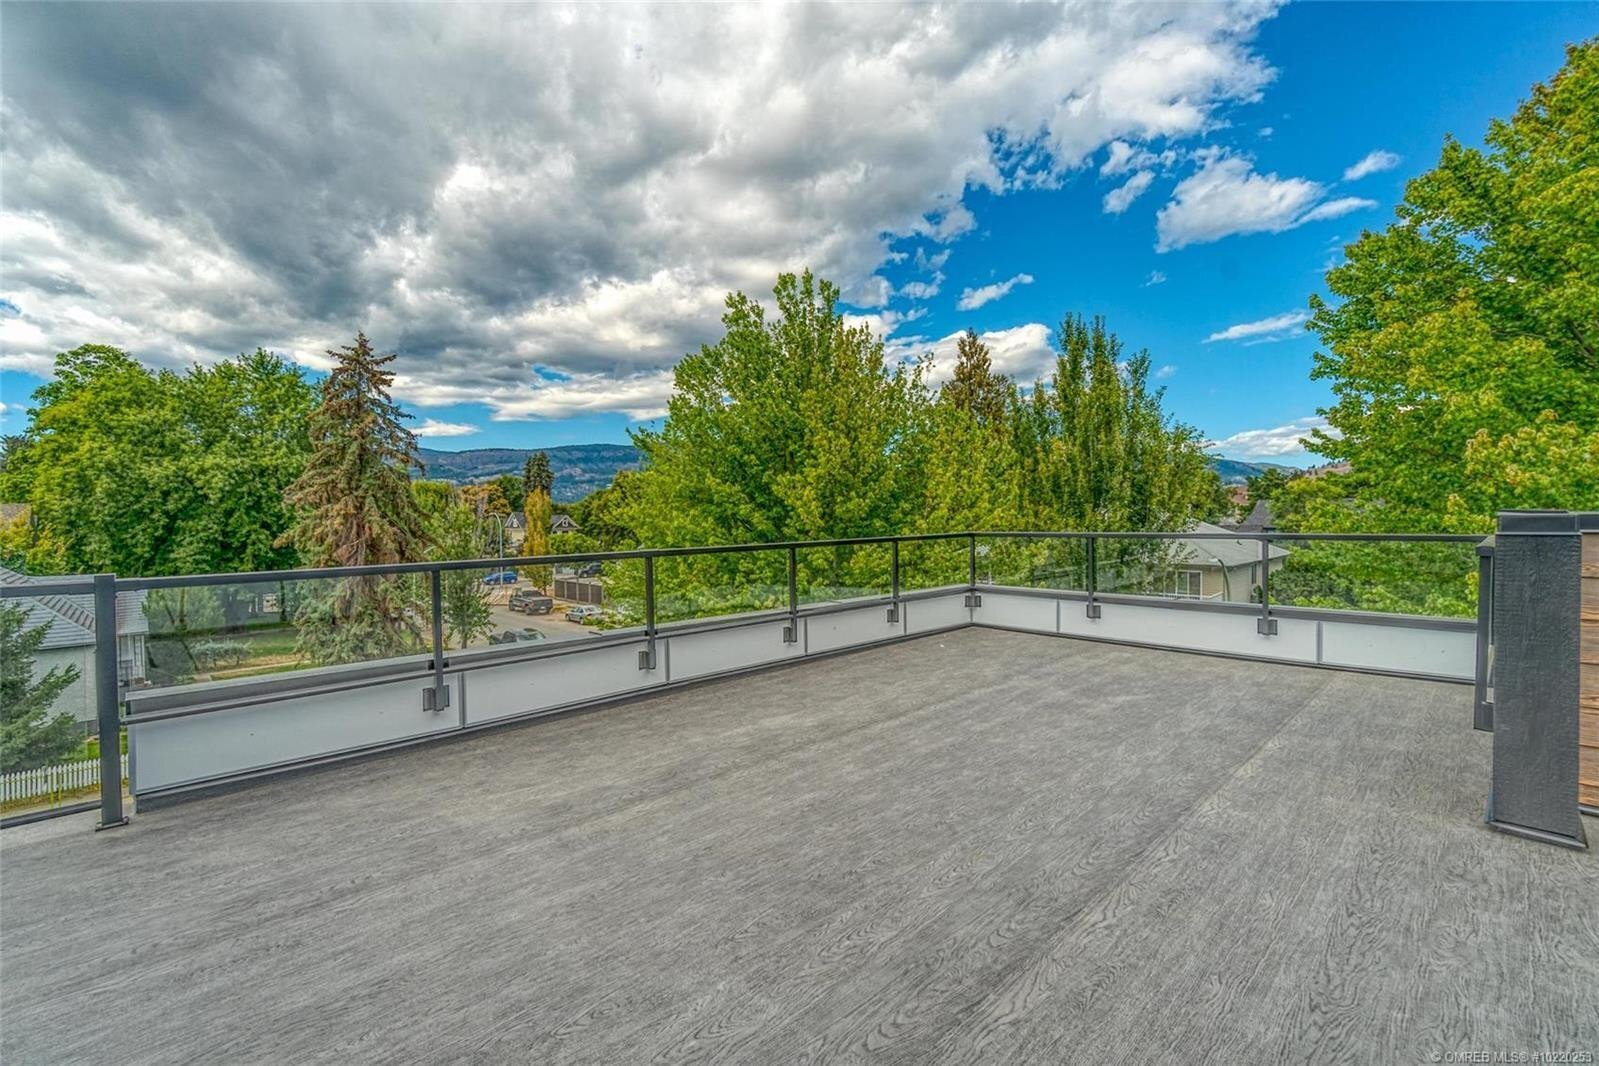 Townhouse for sale at 937 Borden Ave Unit 2 Kelowna British Columbia - MLS: 10220253